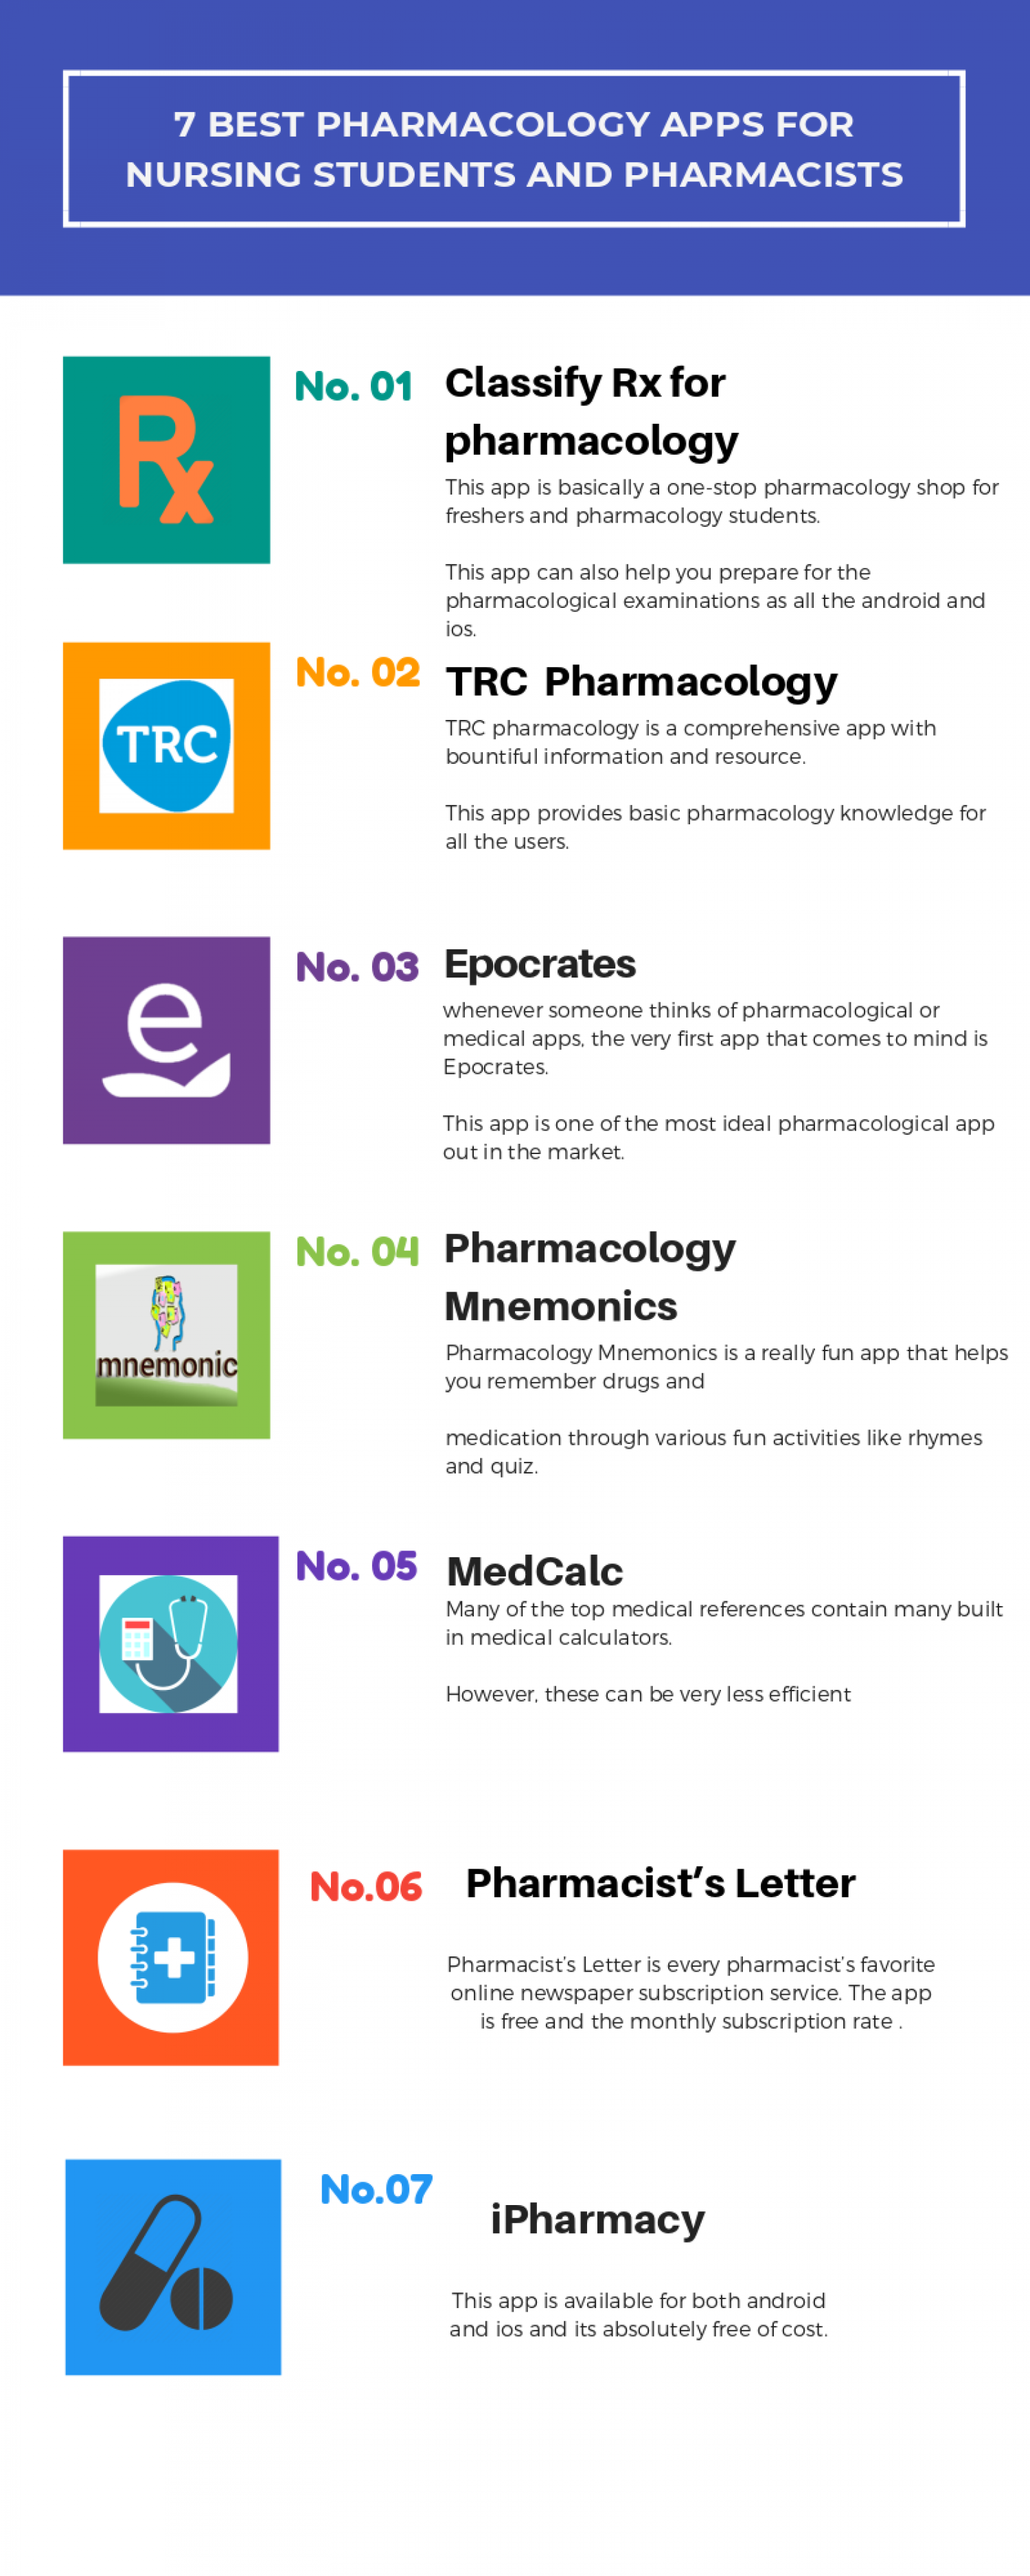 7 best pharmacology apps for nursing students and pharmacists Infographic